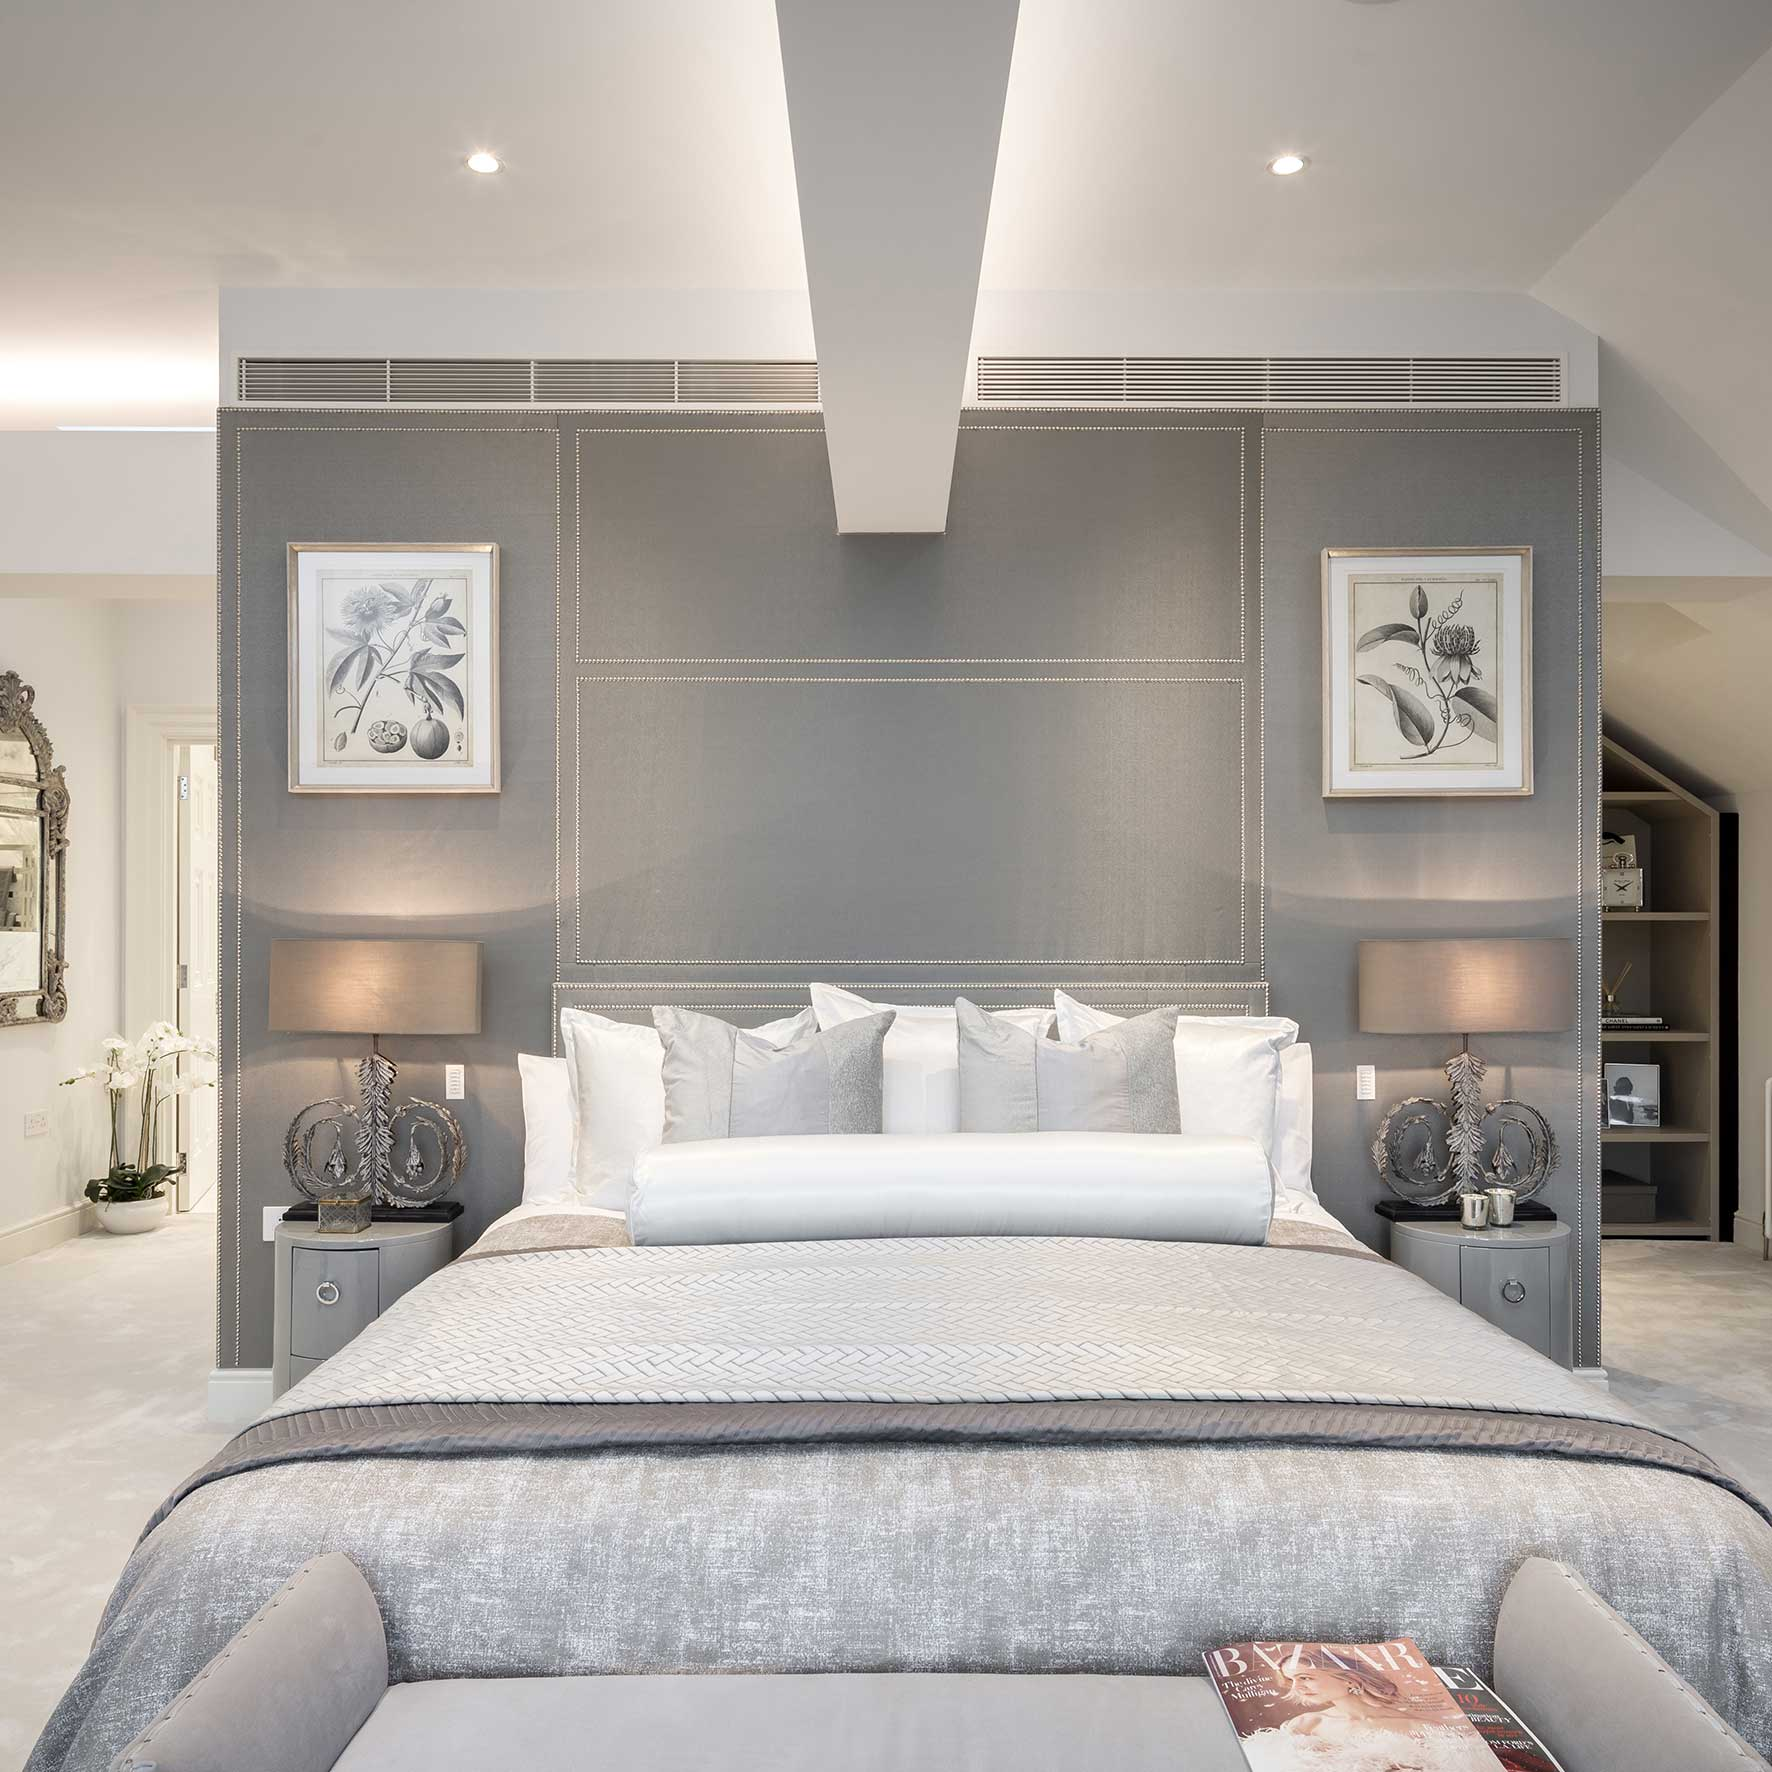 London Square show home by Suna Interior Design at Ancaster-House-045.jpg